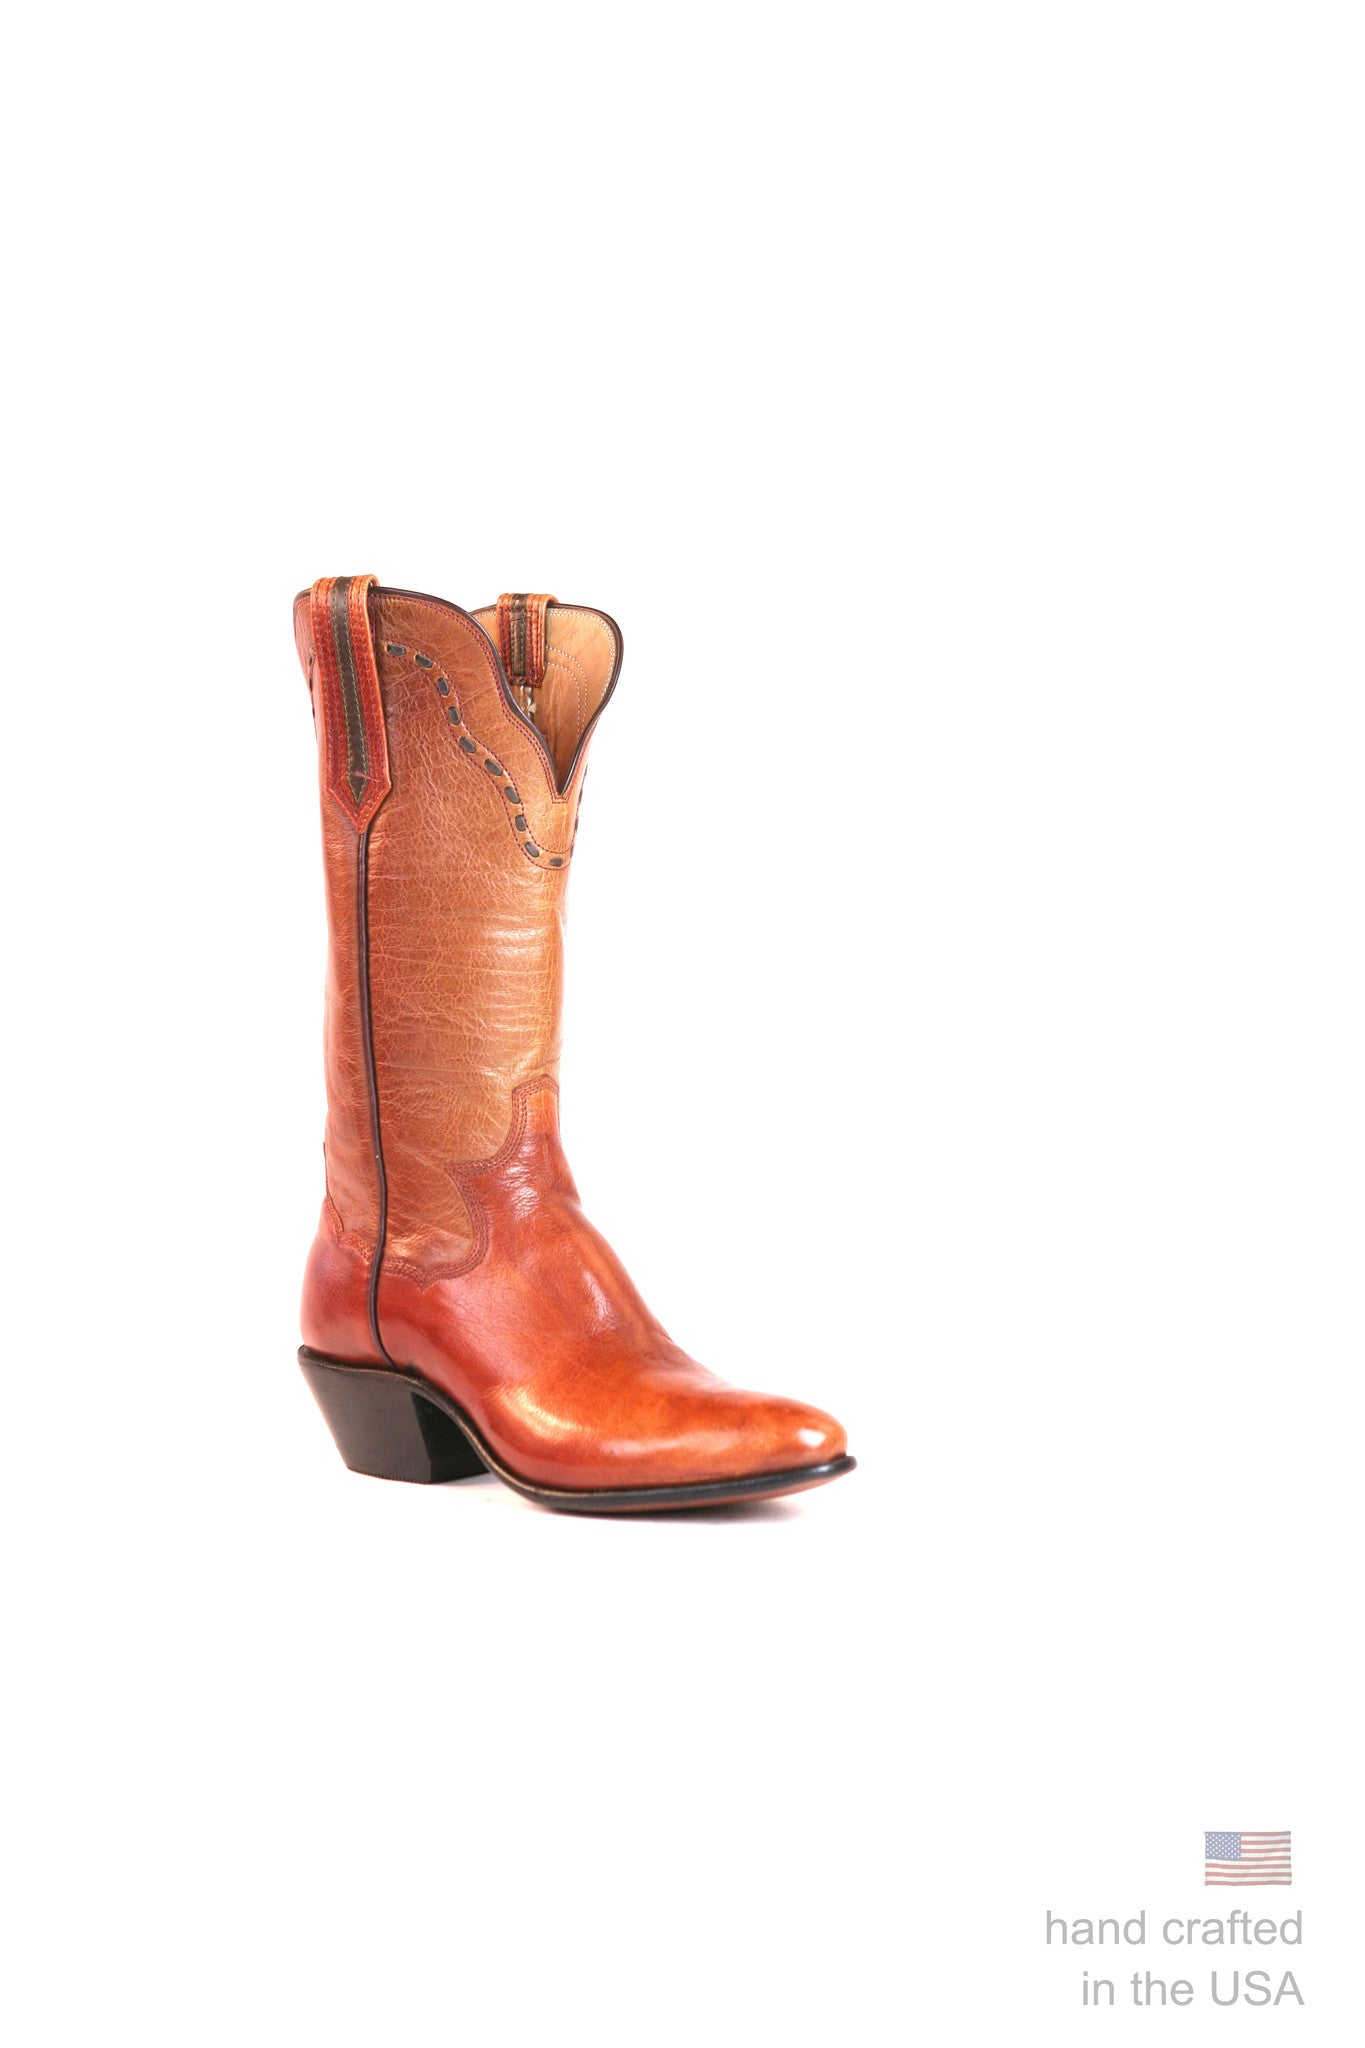 Singles: Boot 0016: Size 5A